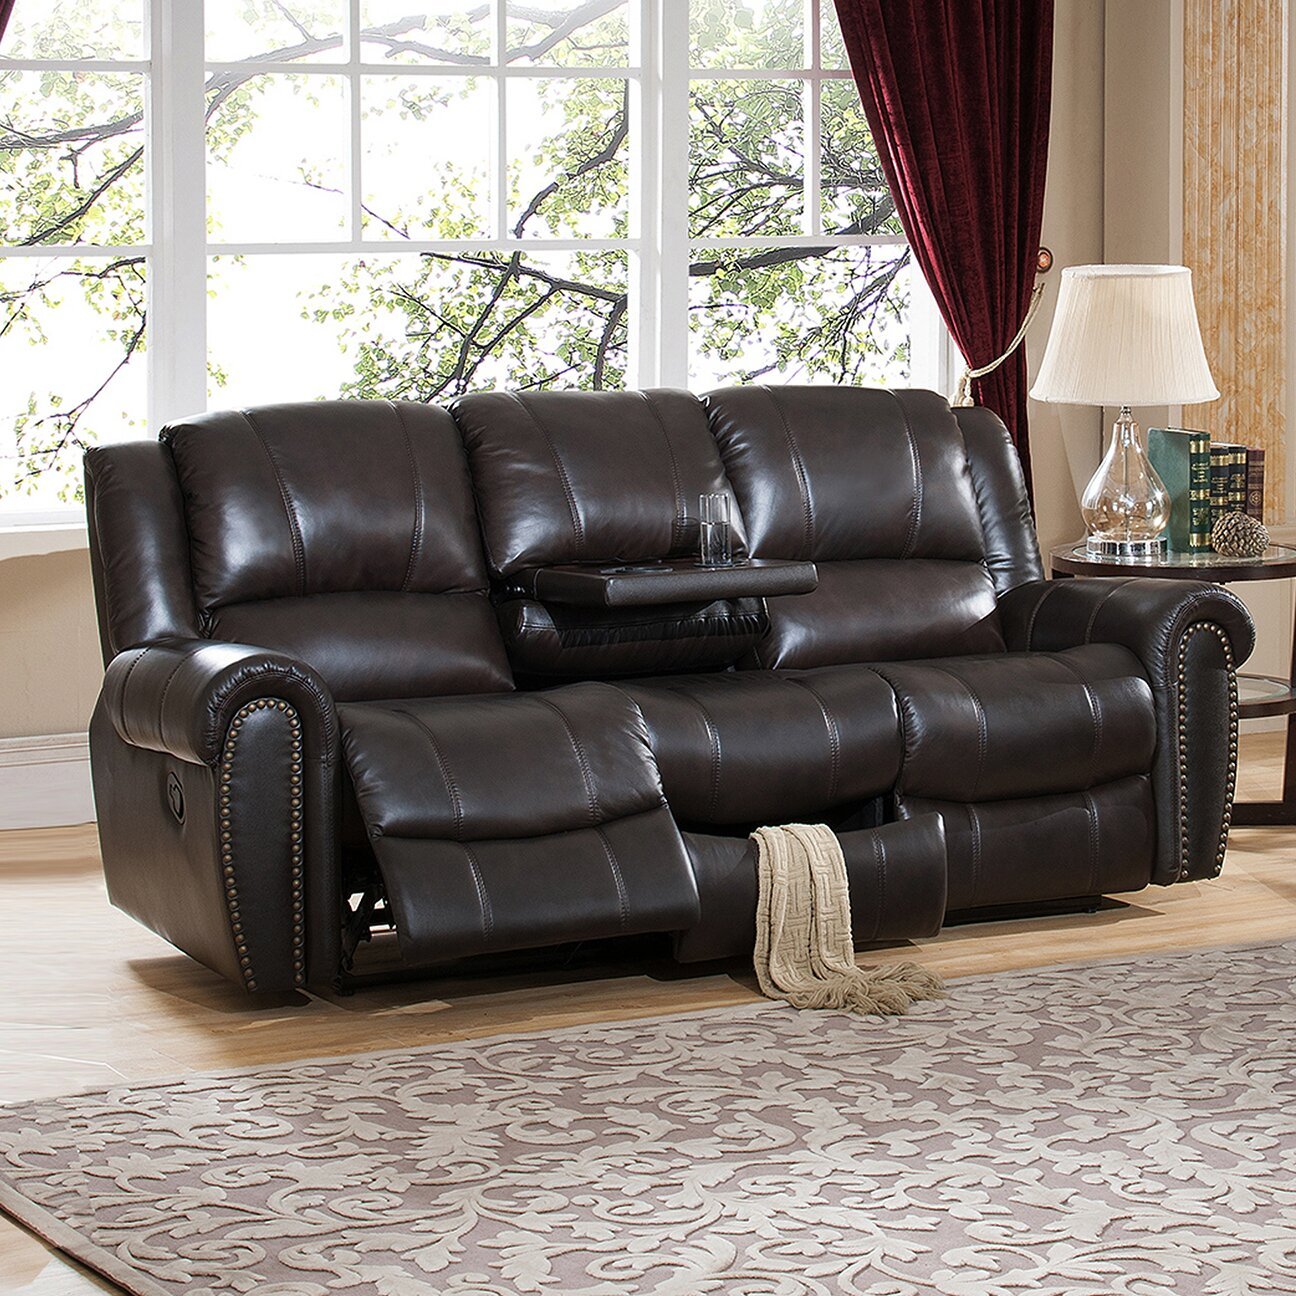 3 piece reclining living room set amax 3 leather recliner living room set 23988